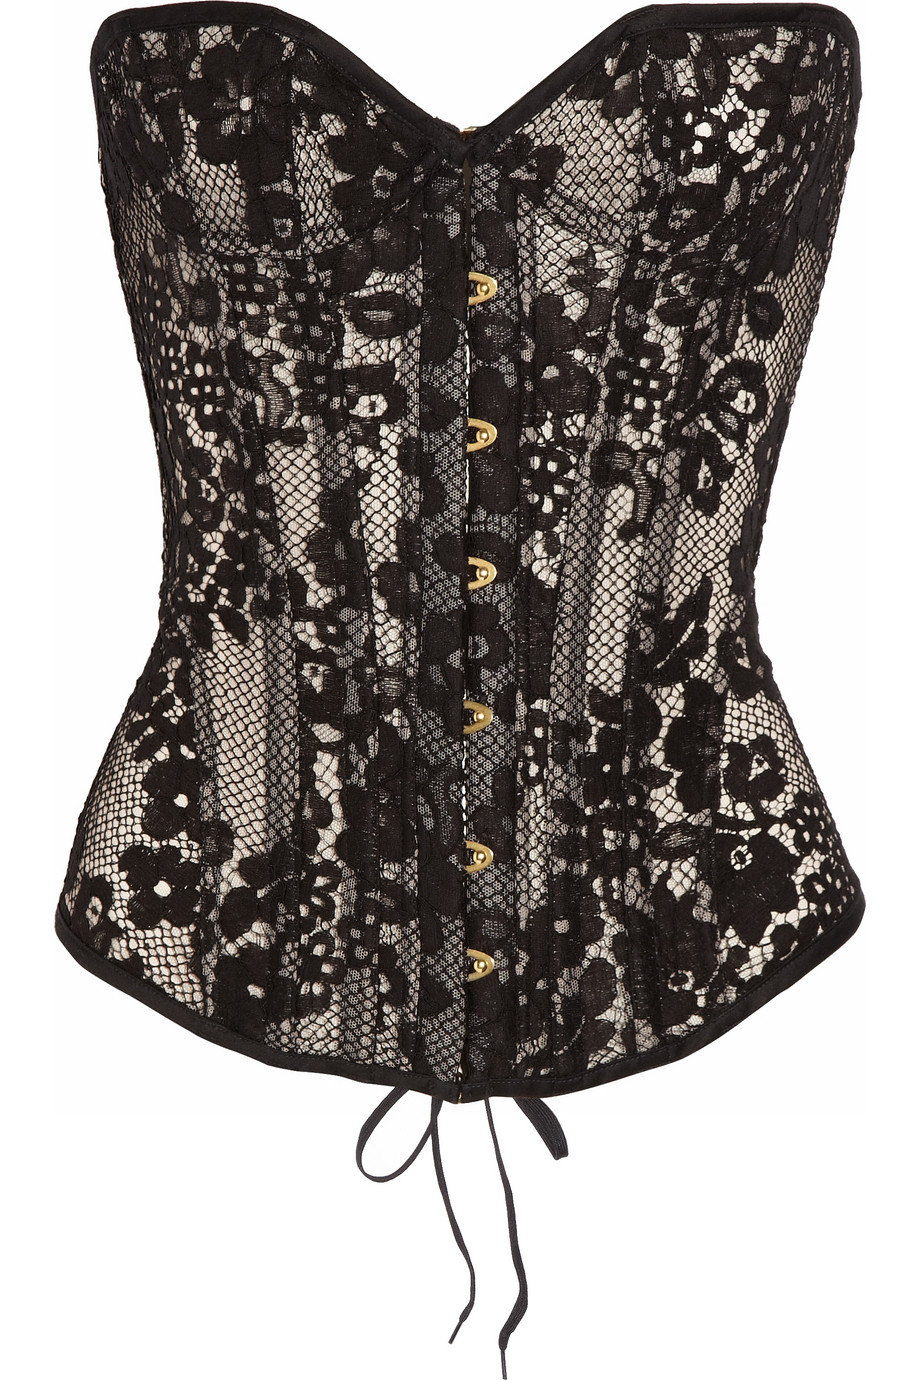 Fashion Corset Tops Sale